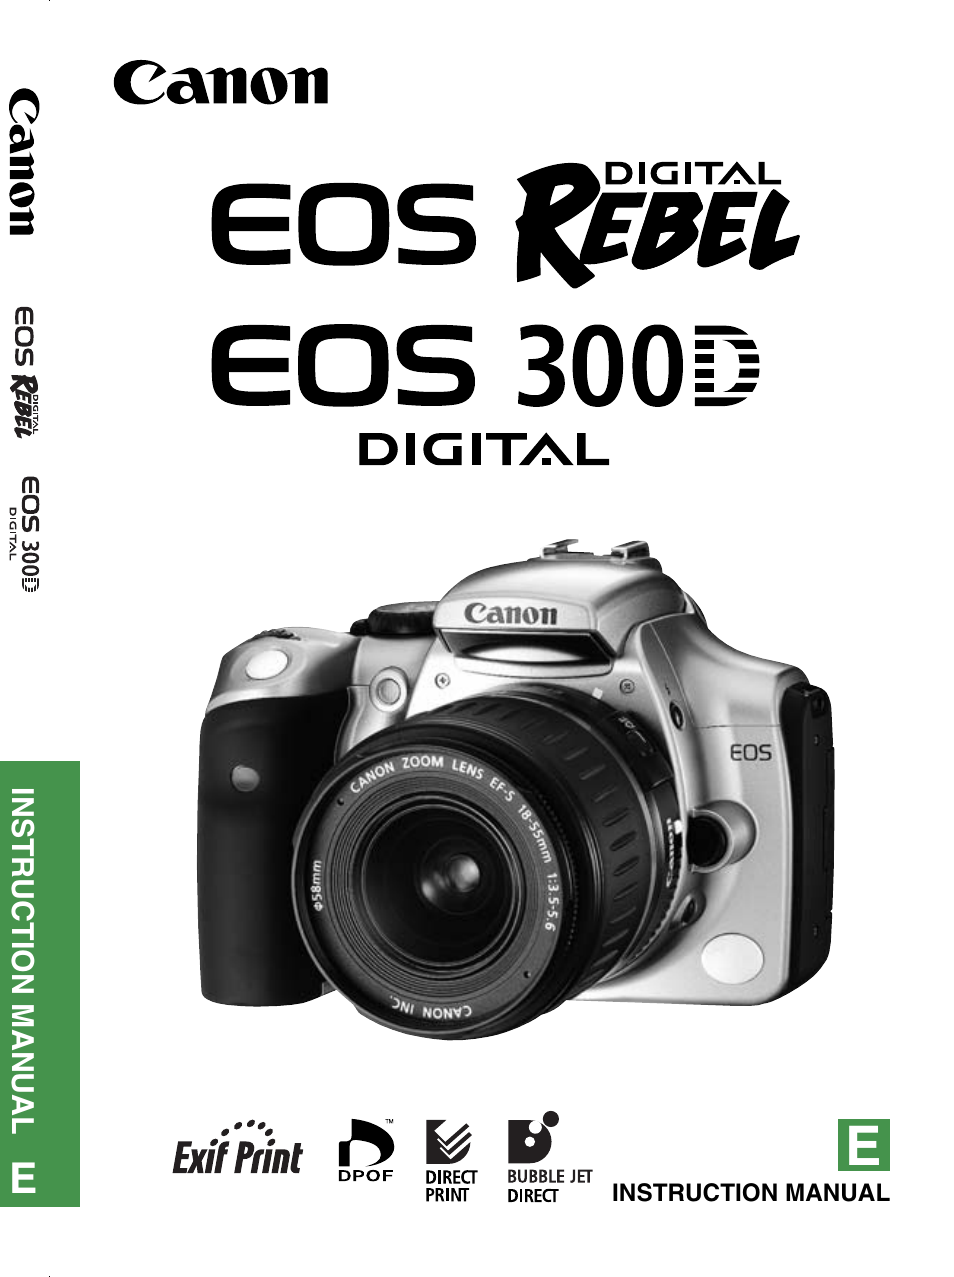 eos rebel k2 user manual how to and user guide instructions u2022 rh taxibermuda co Canon EOS Rebel T4i Description Canon EOS Rebel K2 Manual